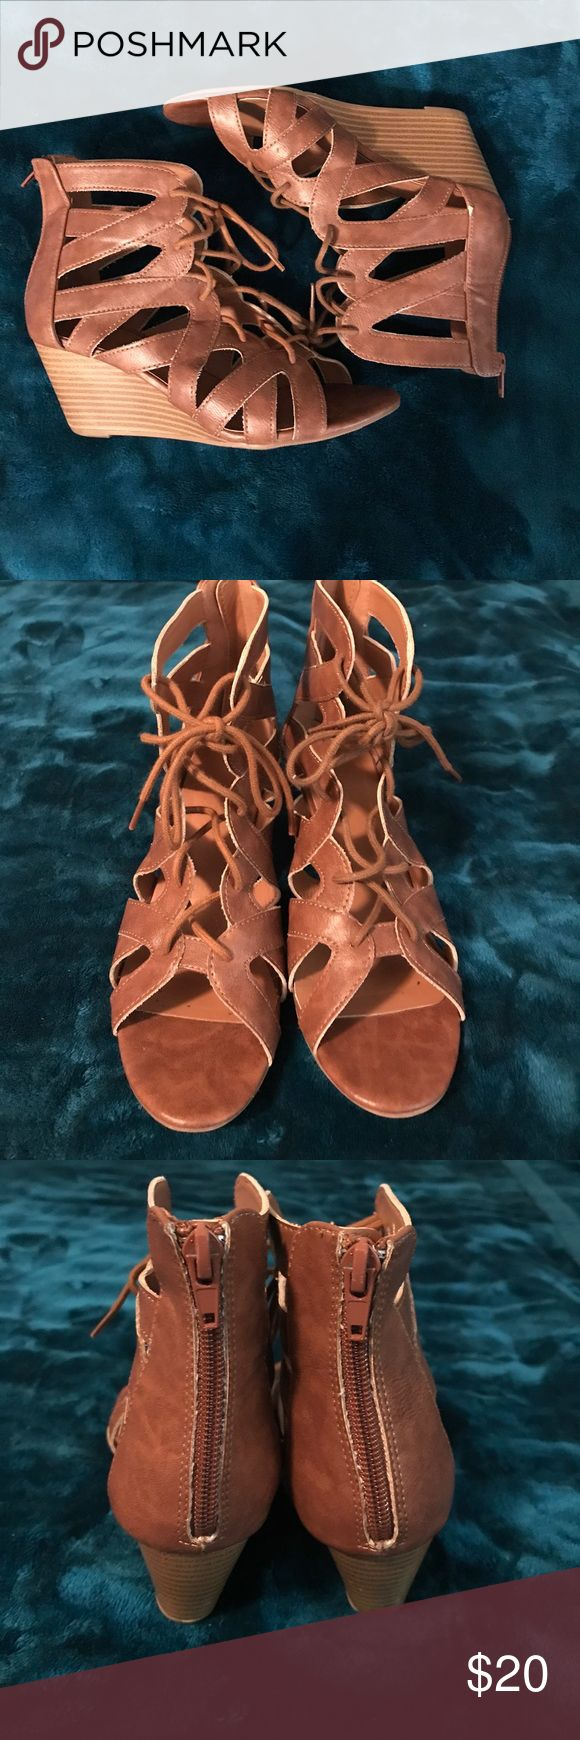 Camel wedge sandals✨ You can pair these sandals with anything! Once again, these shoes are too narrow for me. Only worn once, still in great condition! Make an offer!!!🤗 Charlotte Russe Shoes Sandals